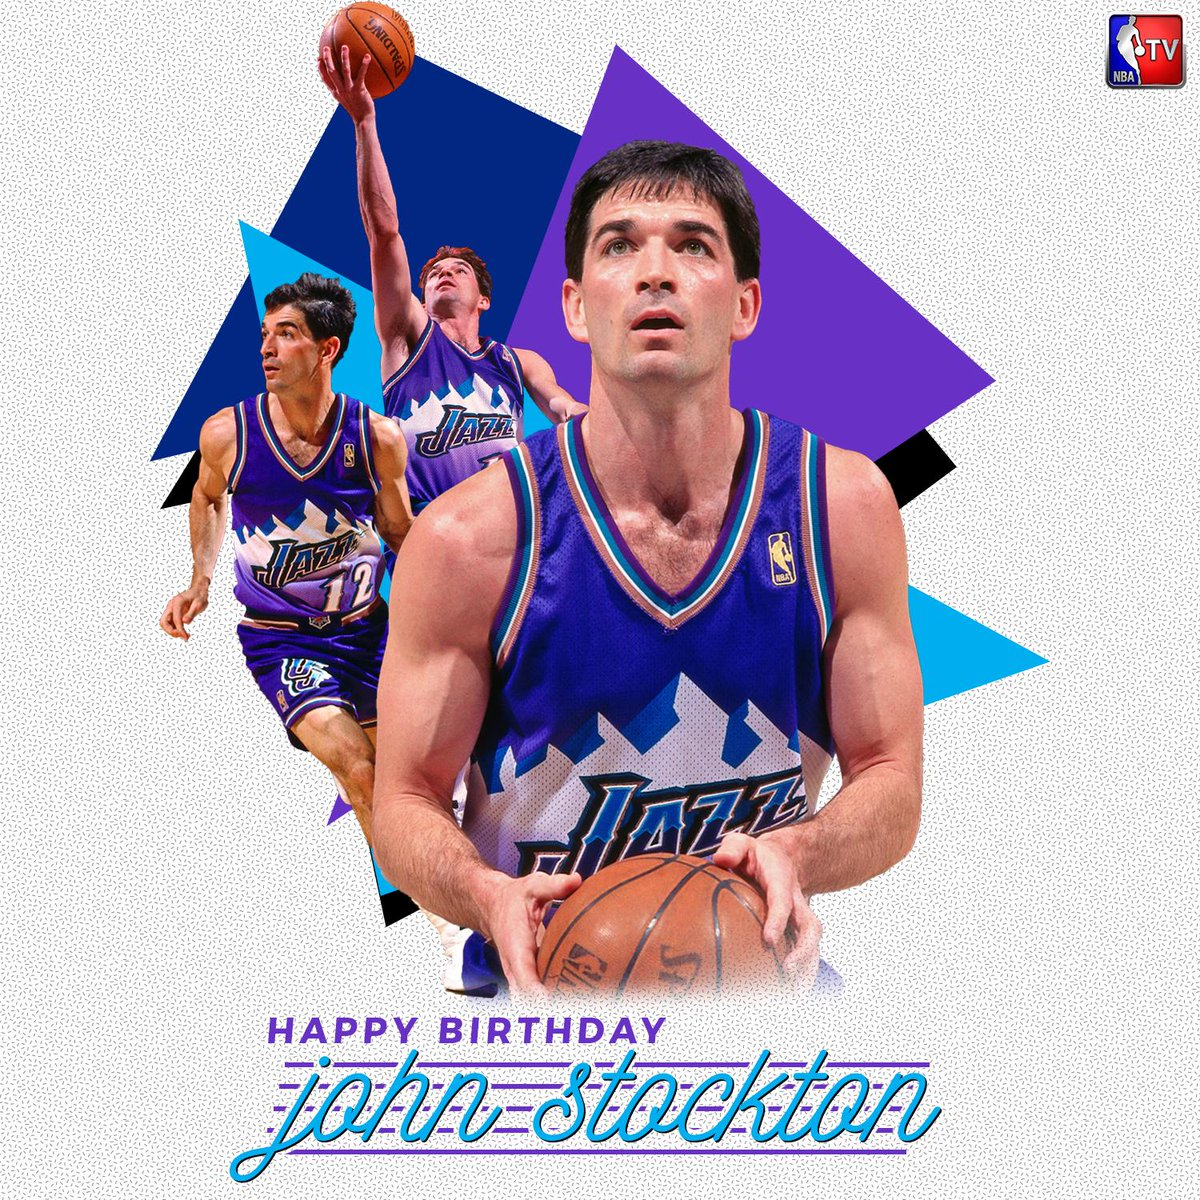 RT to wish @utahjazz legend, 10x All-Star & Hall of Famer John Stockton a Happy Birthday! 🎂